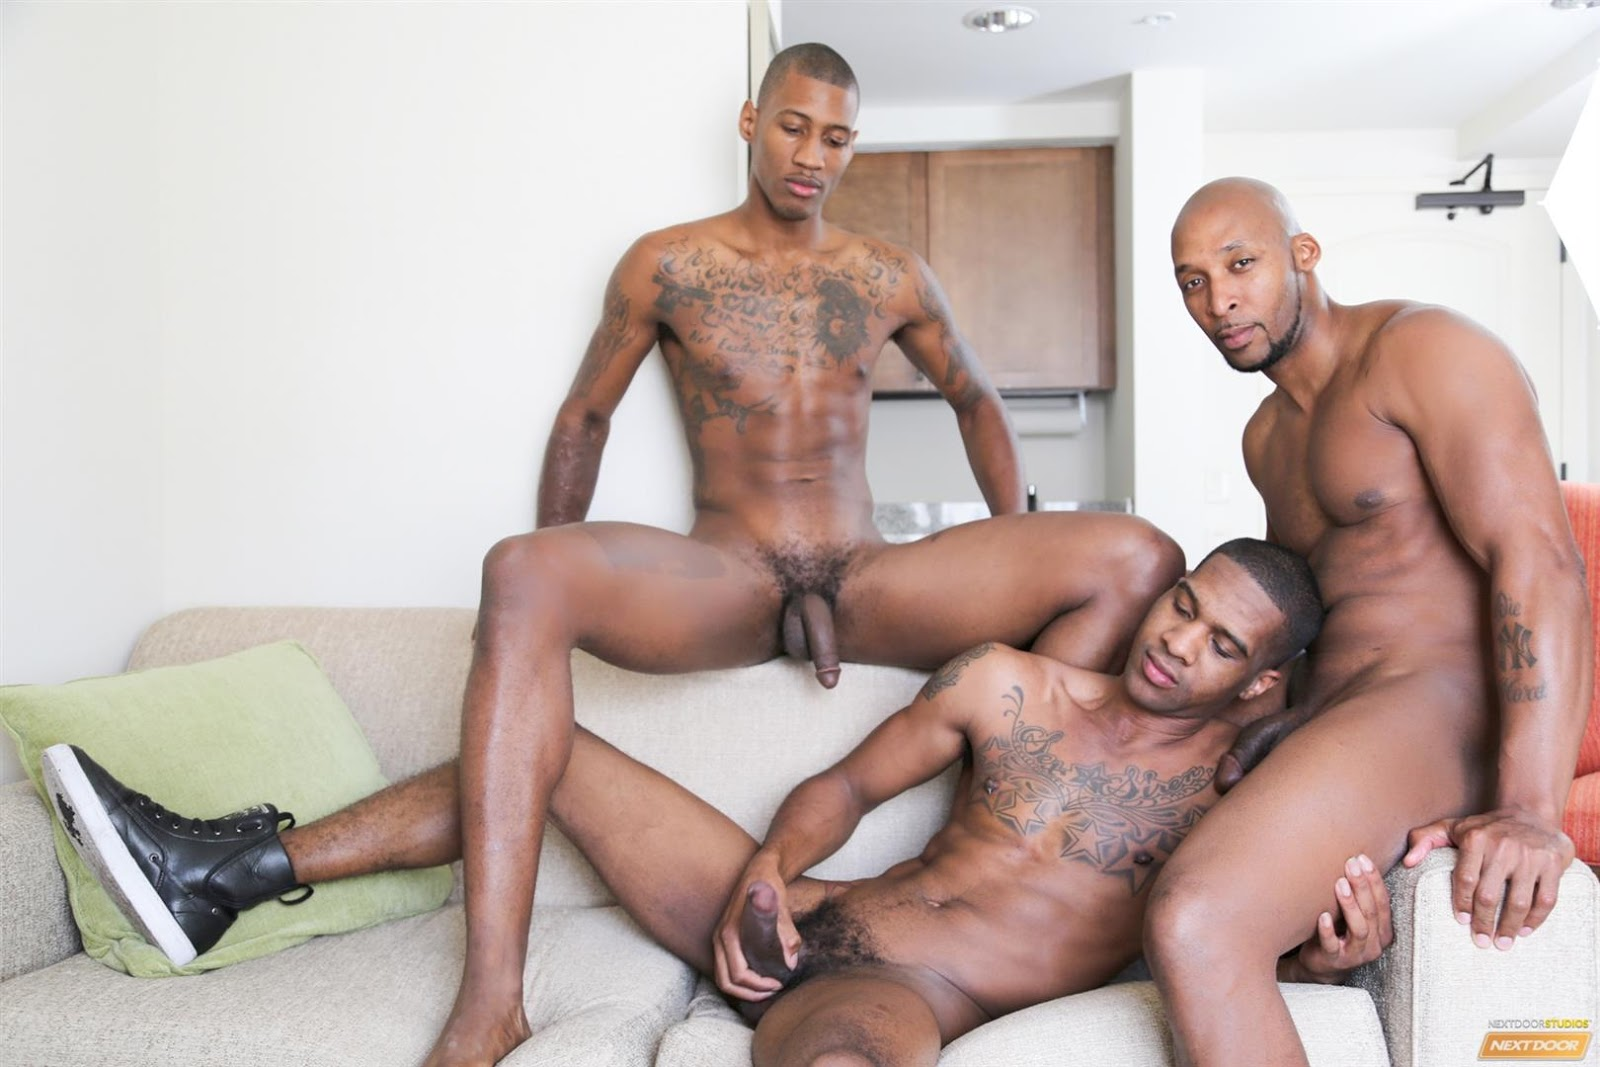 Group Porn Sex 57